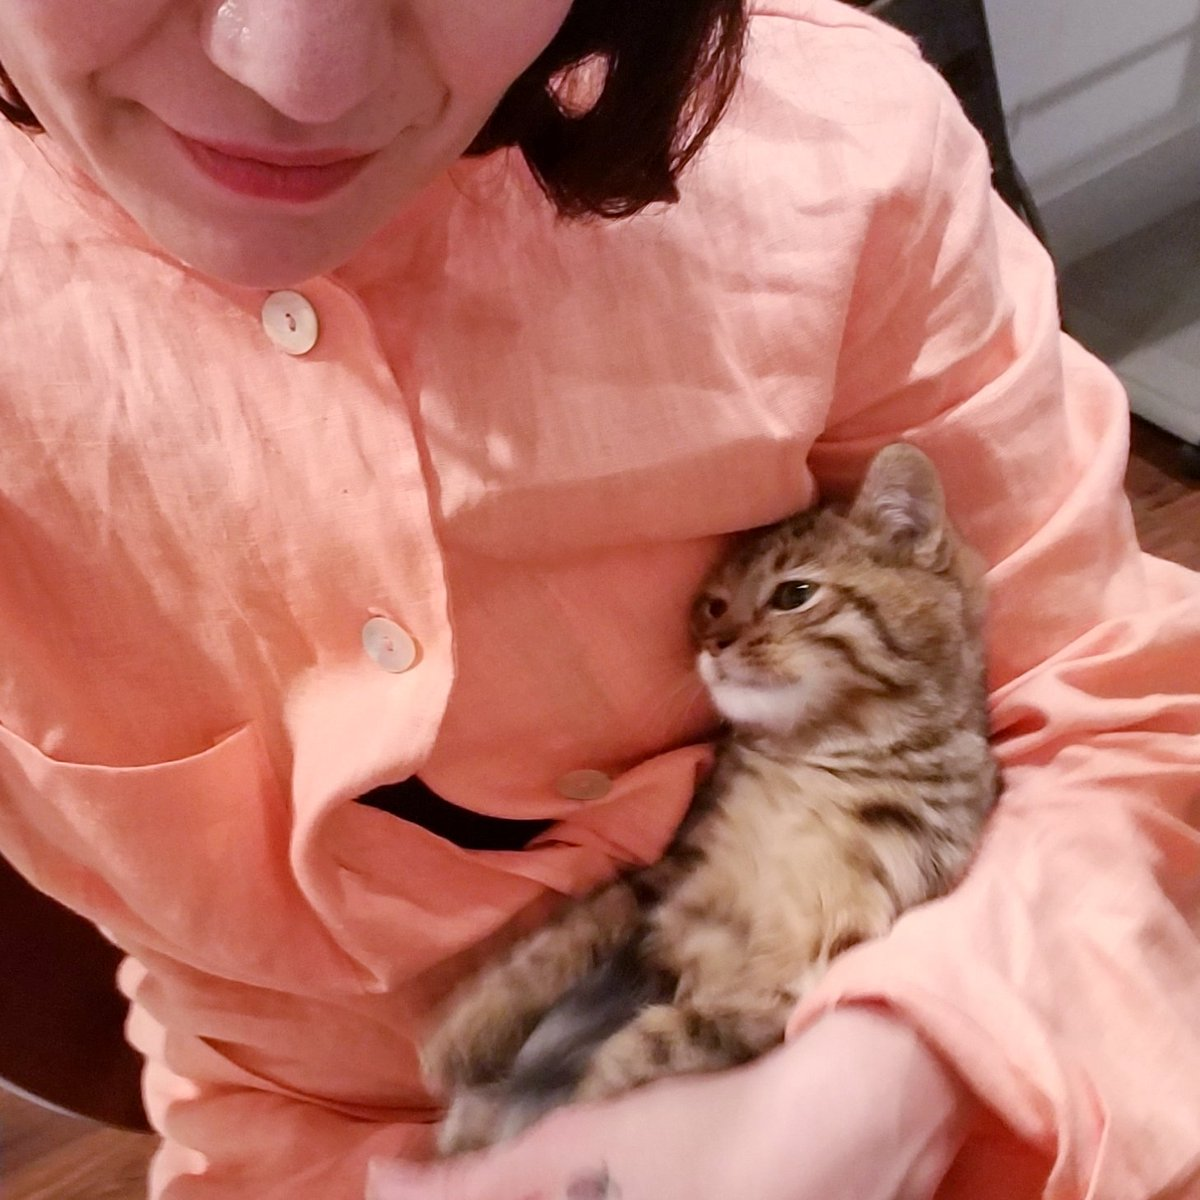 endorphins are happening.  #newkitten <br>http://pic.twitter.com/MVR5UObaqW